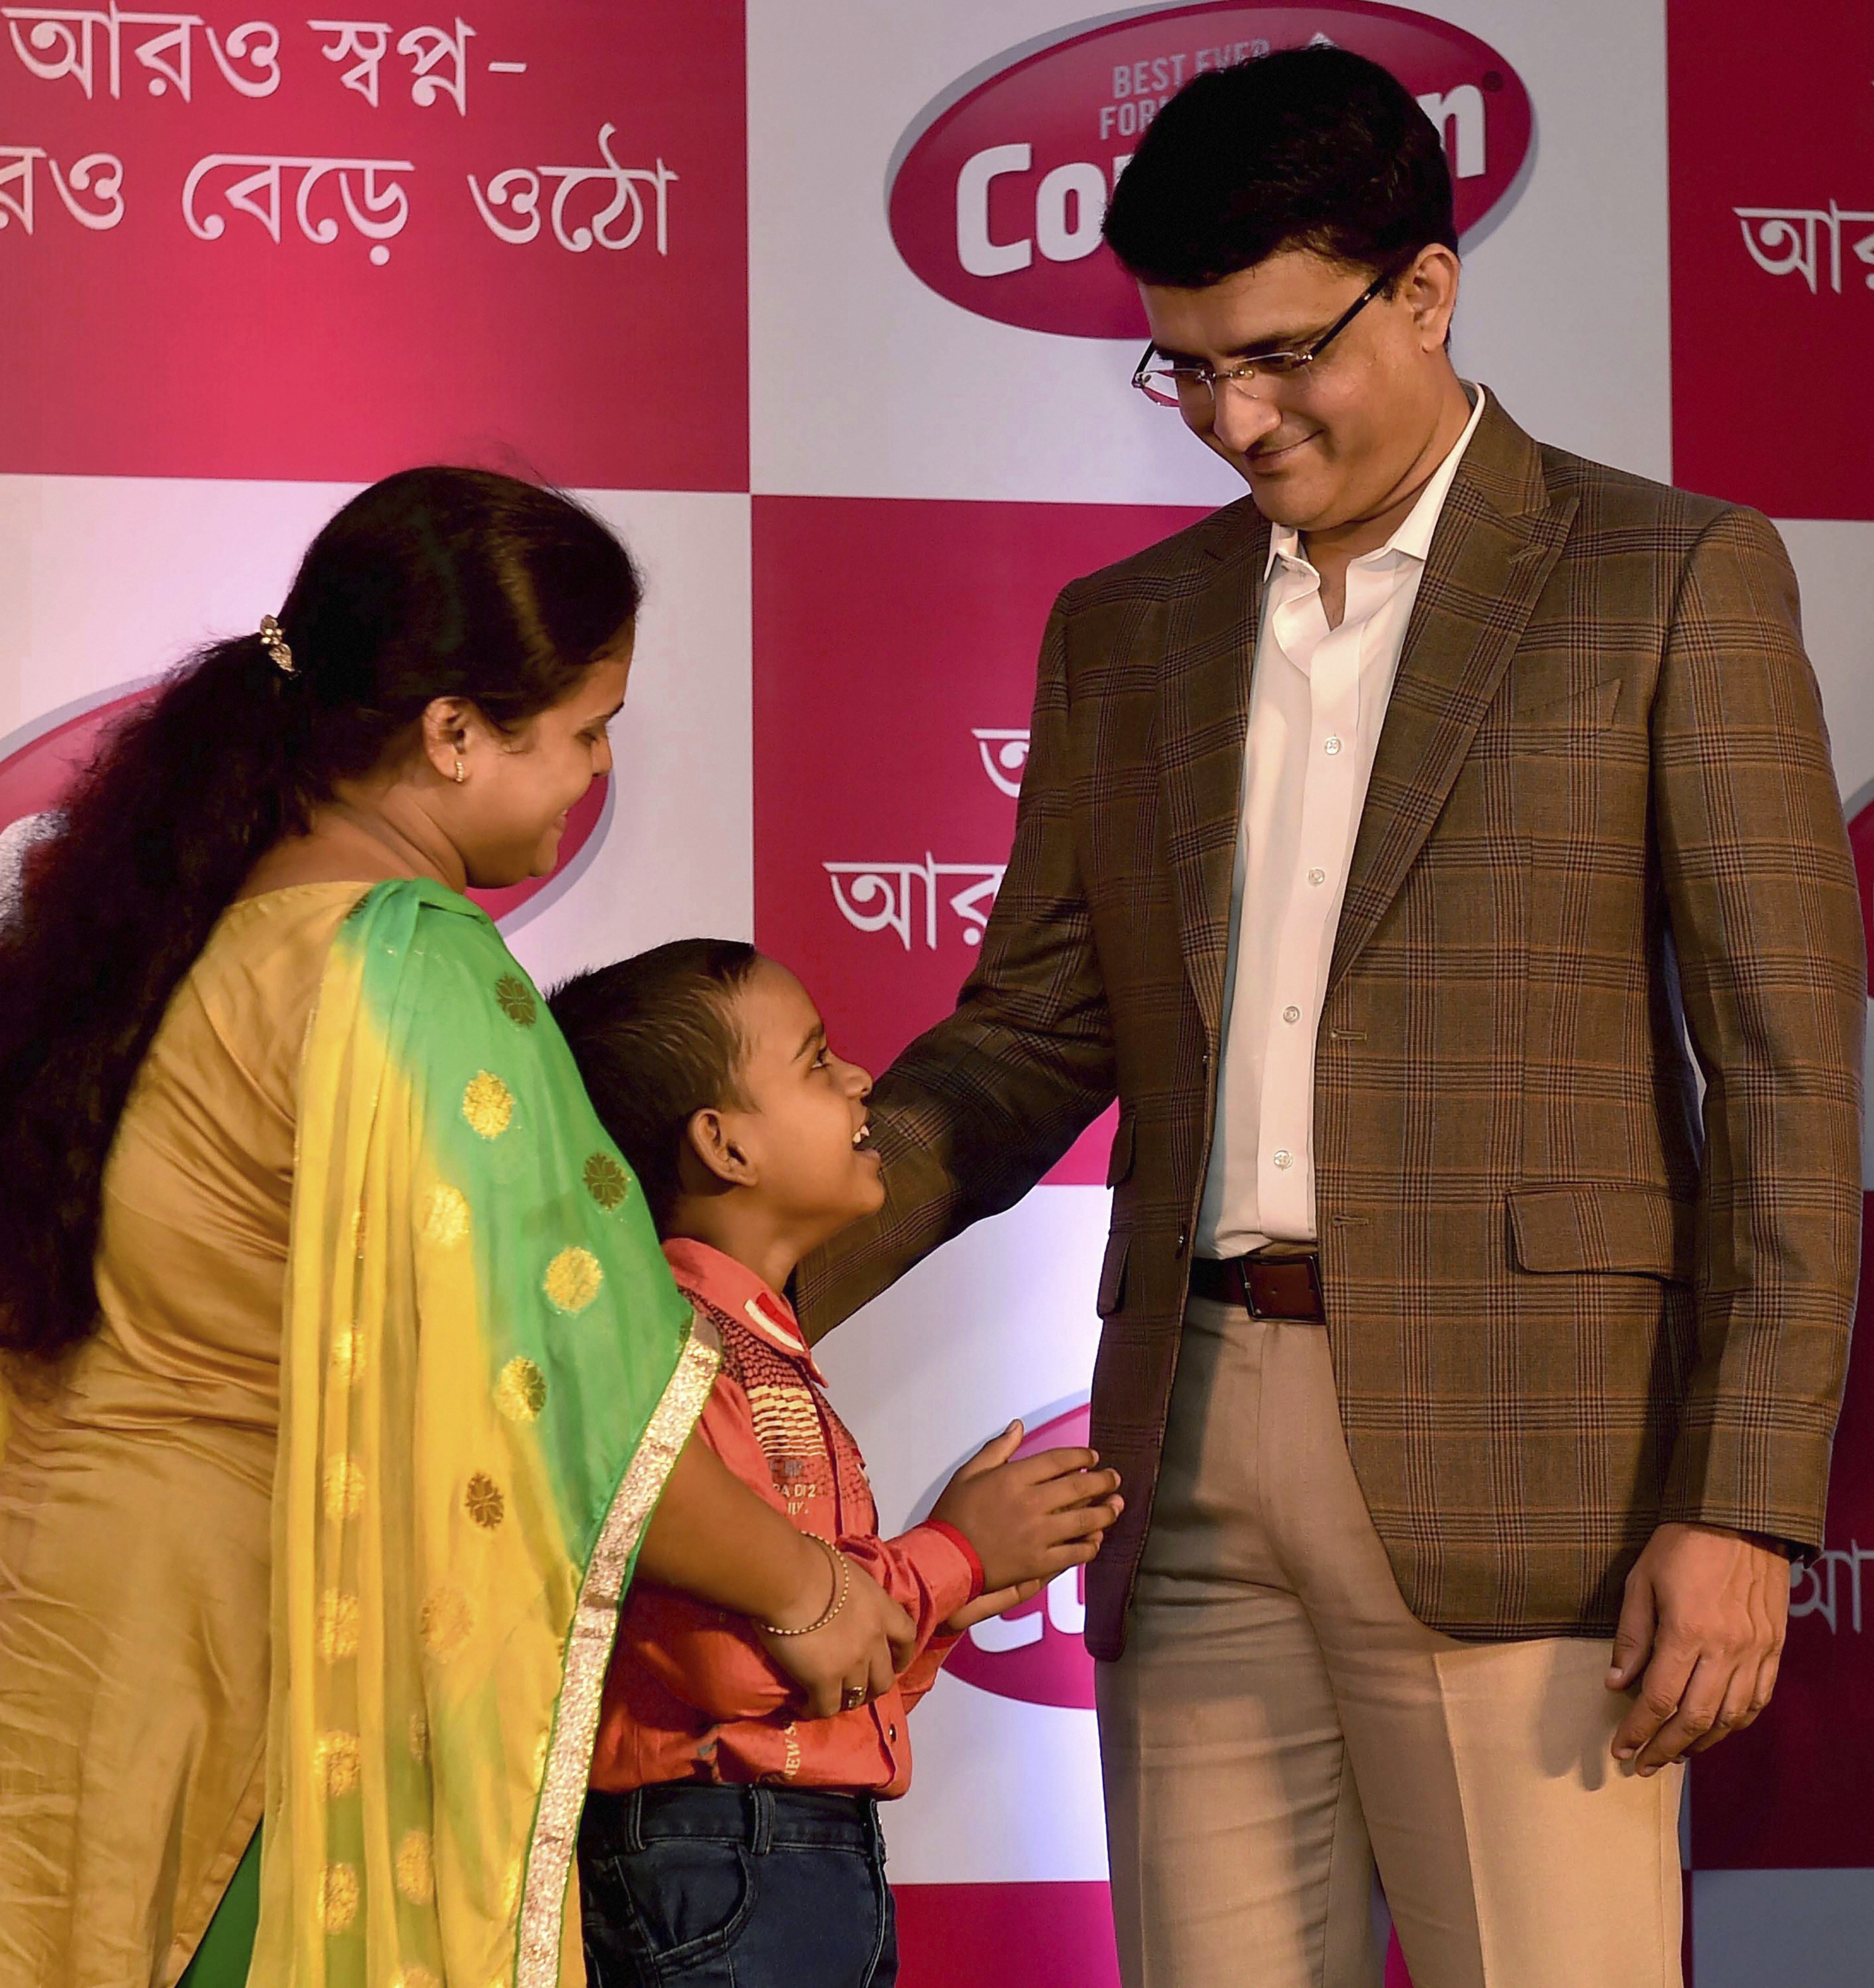 Former Indian cricket team captain and CAB (Cricket Association of Bengal) President Sourav Ganguly interacts with a child during a promotional event in Kolkata - PTI